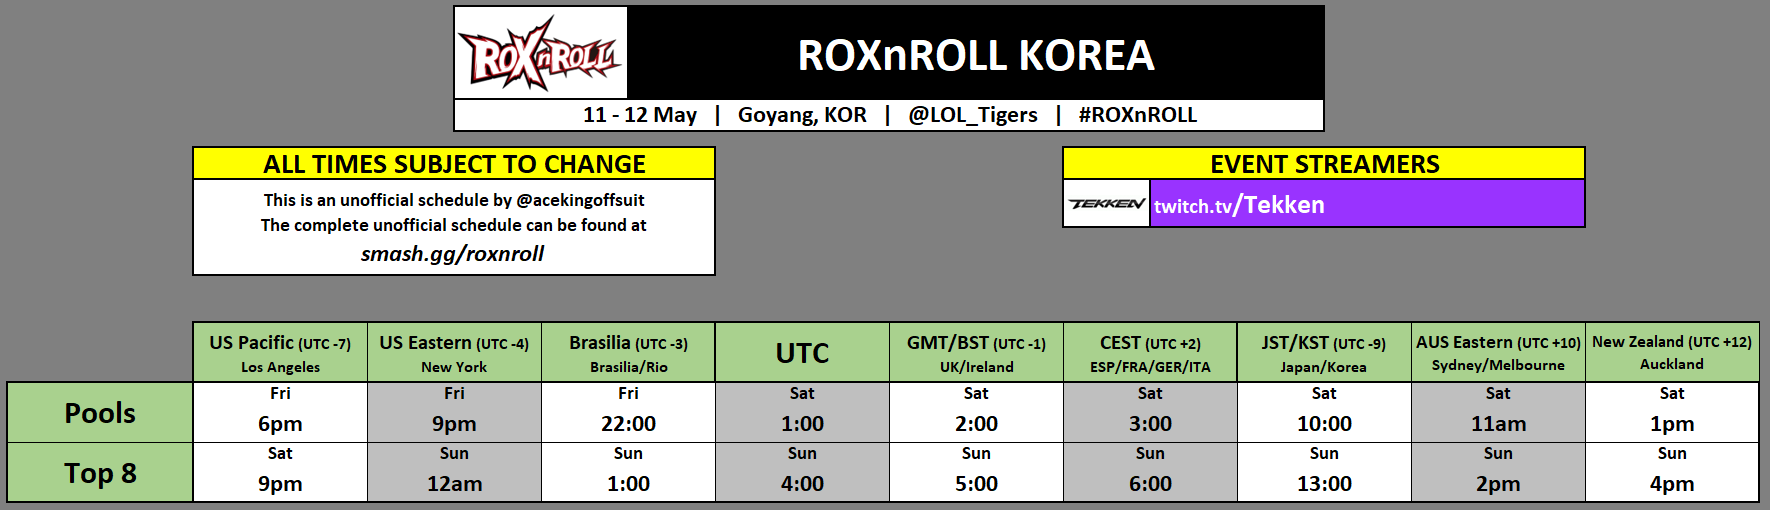 ROXnROLL Korea Event Schedule 1 out of 1 image gallery